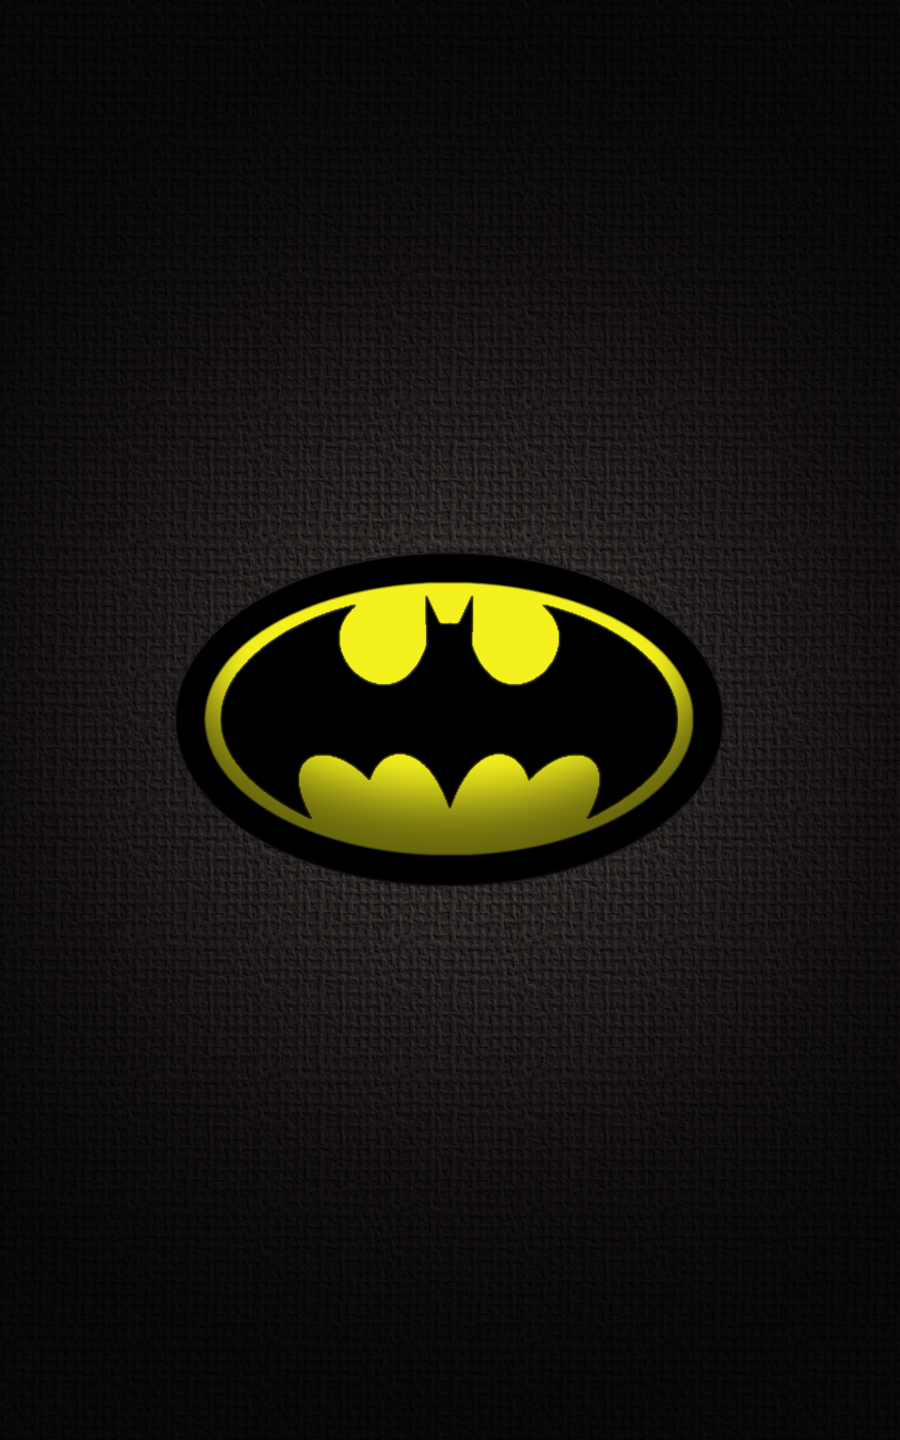 HD Batman Wallpapers for iPhone 4s